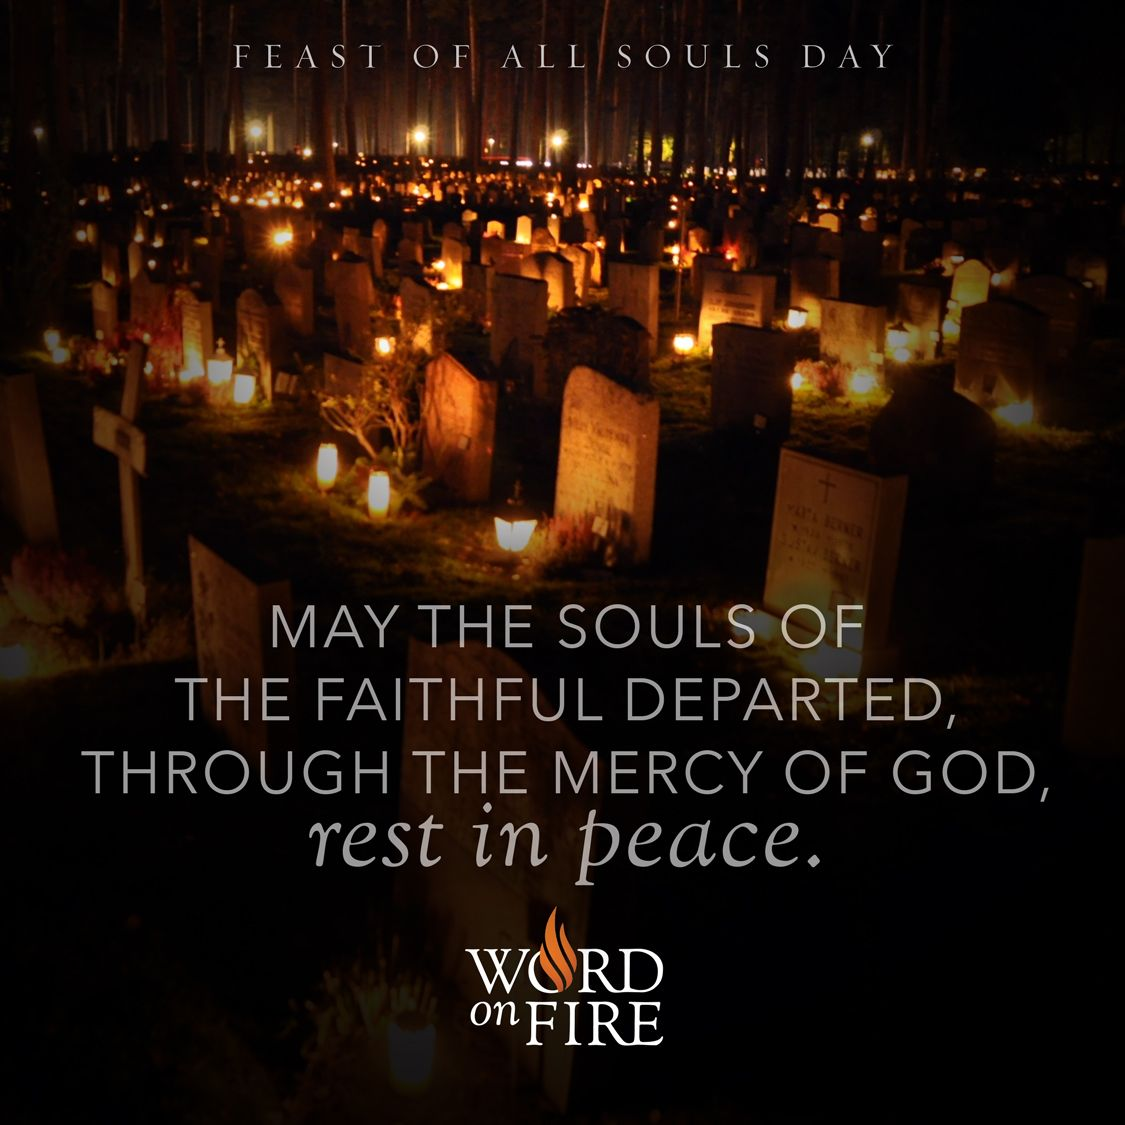 """ALL SOULS DAY """"May the souls of the faithful departed"""